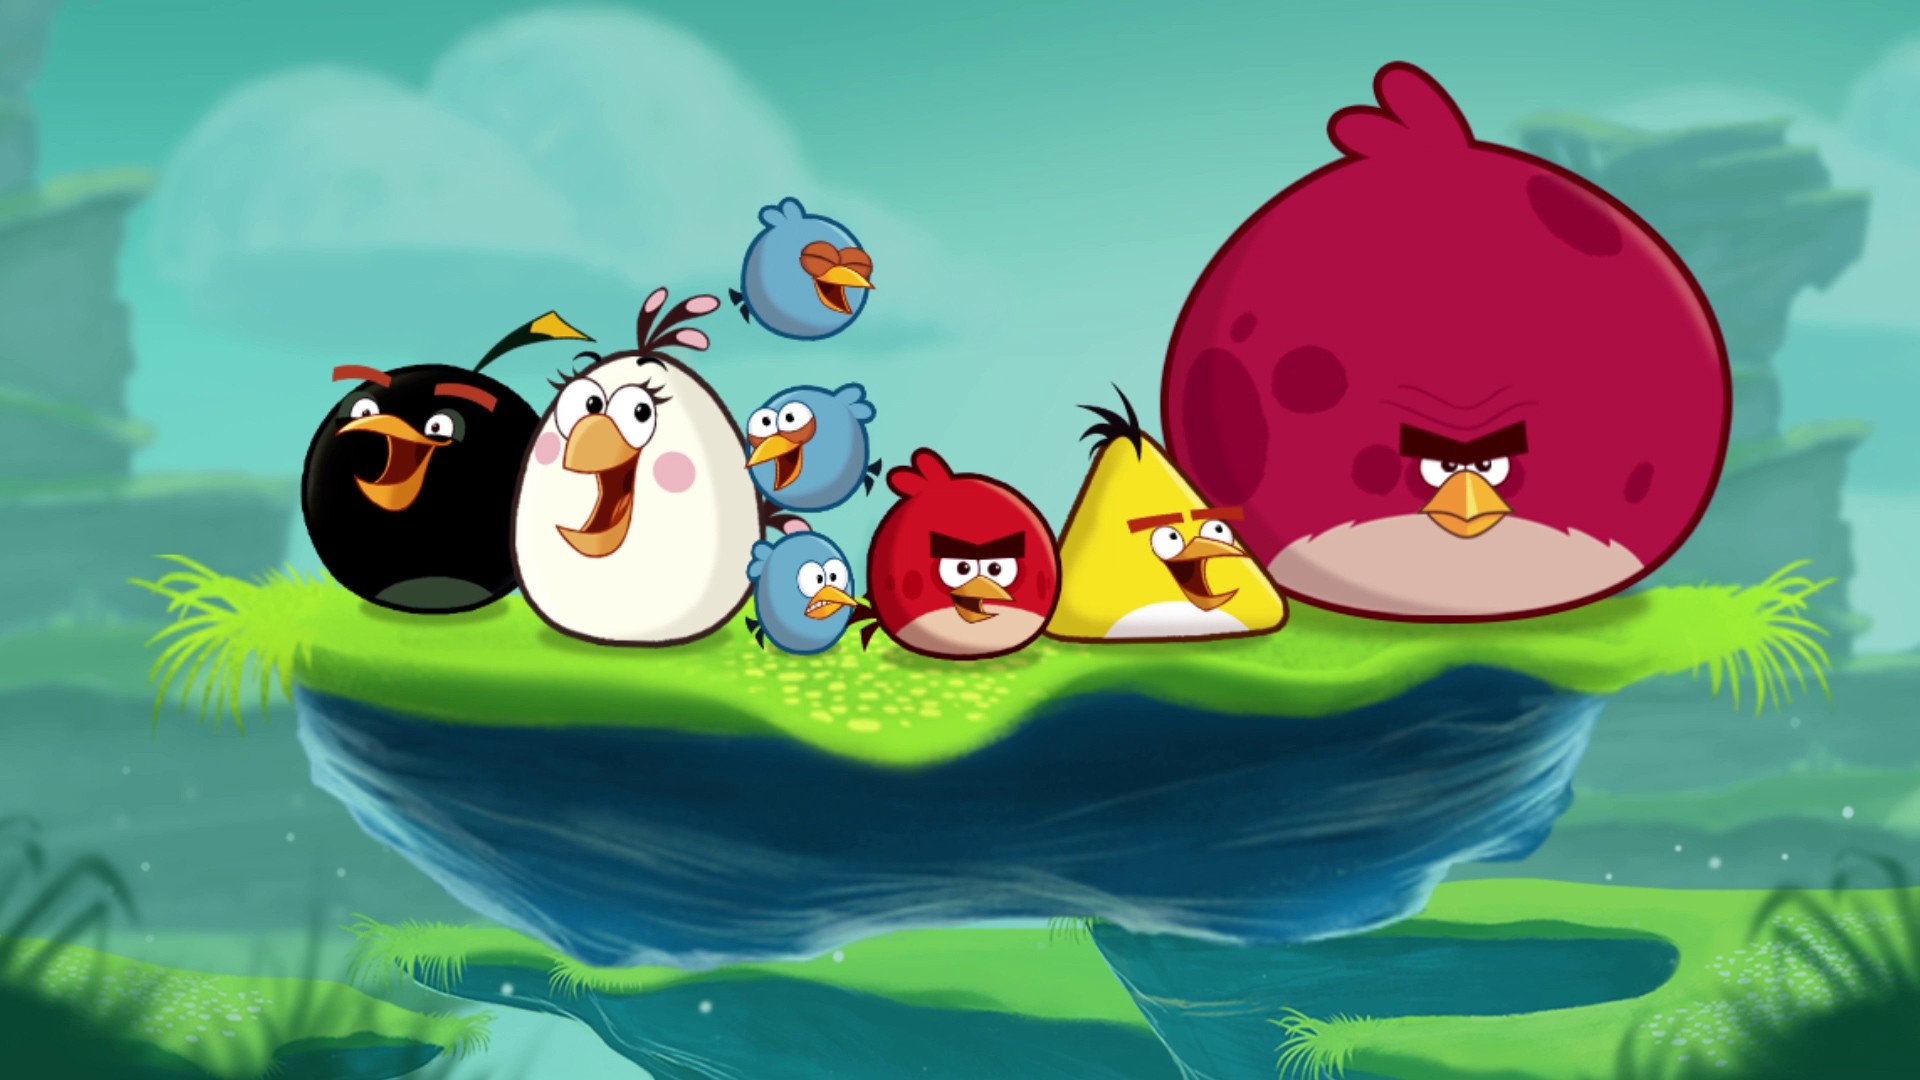 Angry Birds Family Bing Images